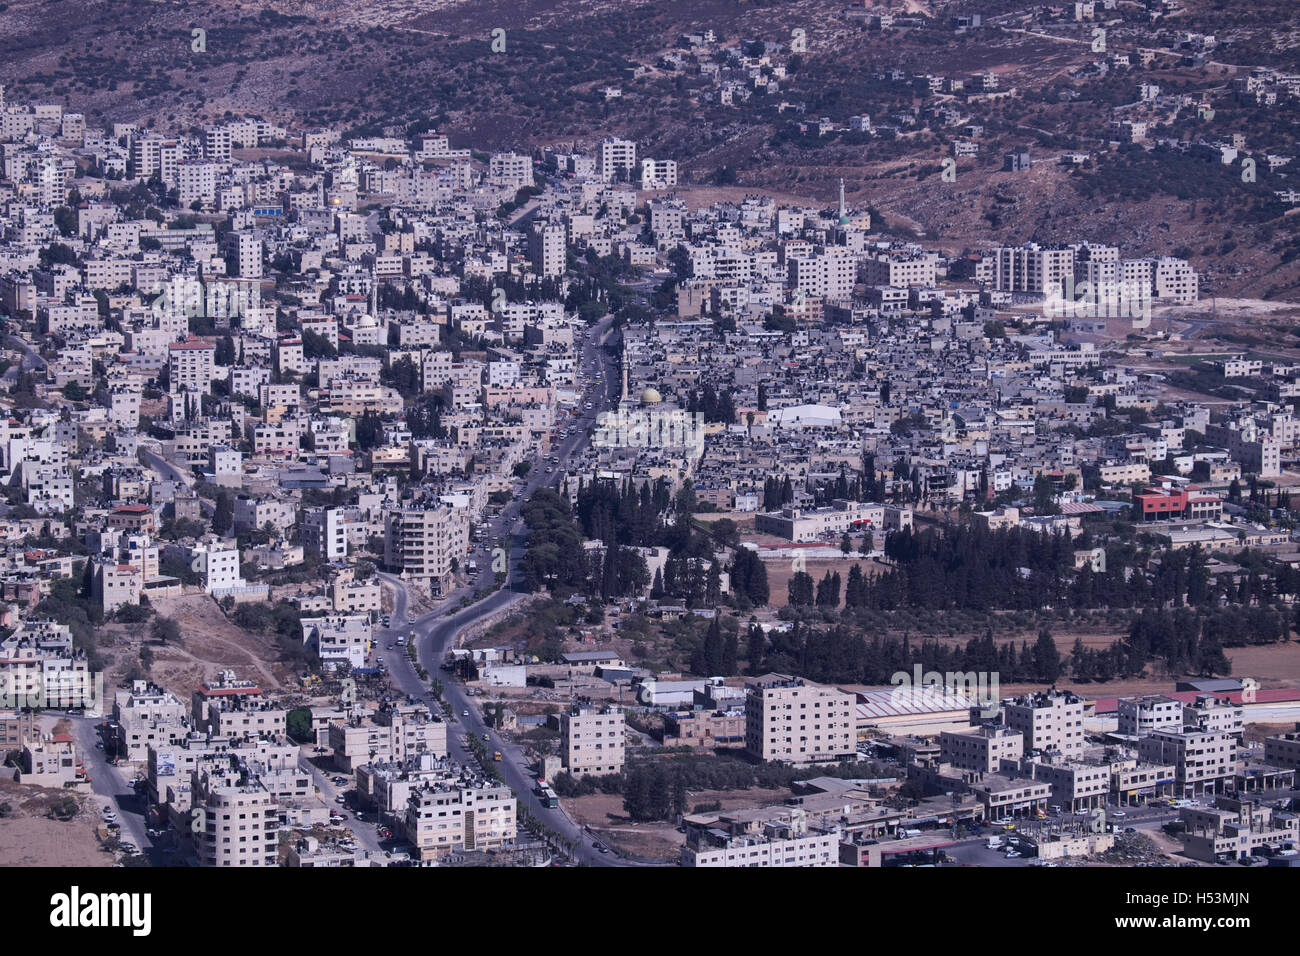 Aerial view of Askar Palestinian refugee camp located on ...